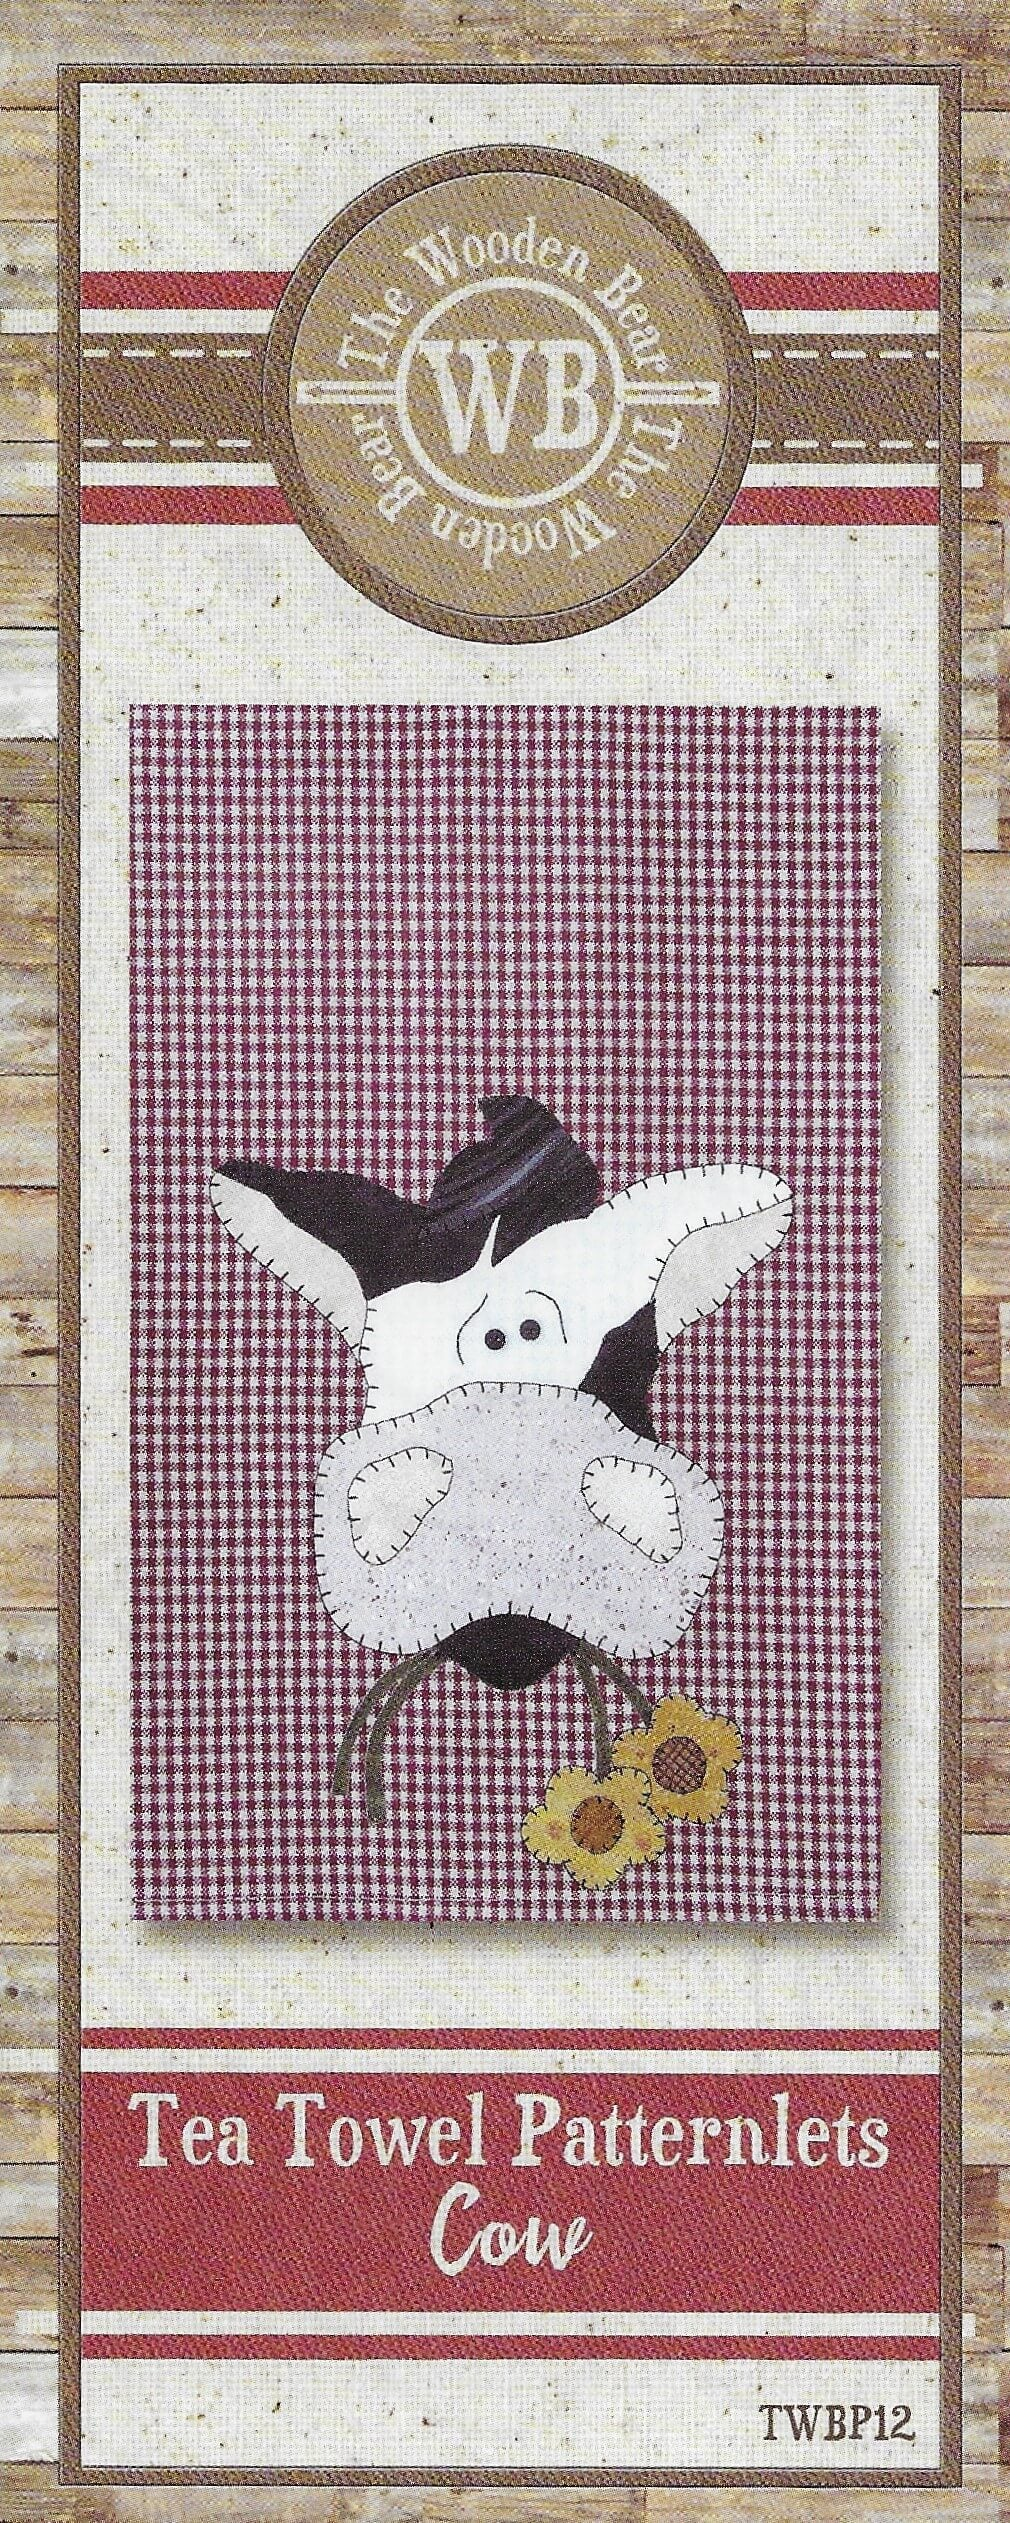 Cow Tea Towel Applique Pattern by The Wooden Bear TWBP12 - Mystic Sunset